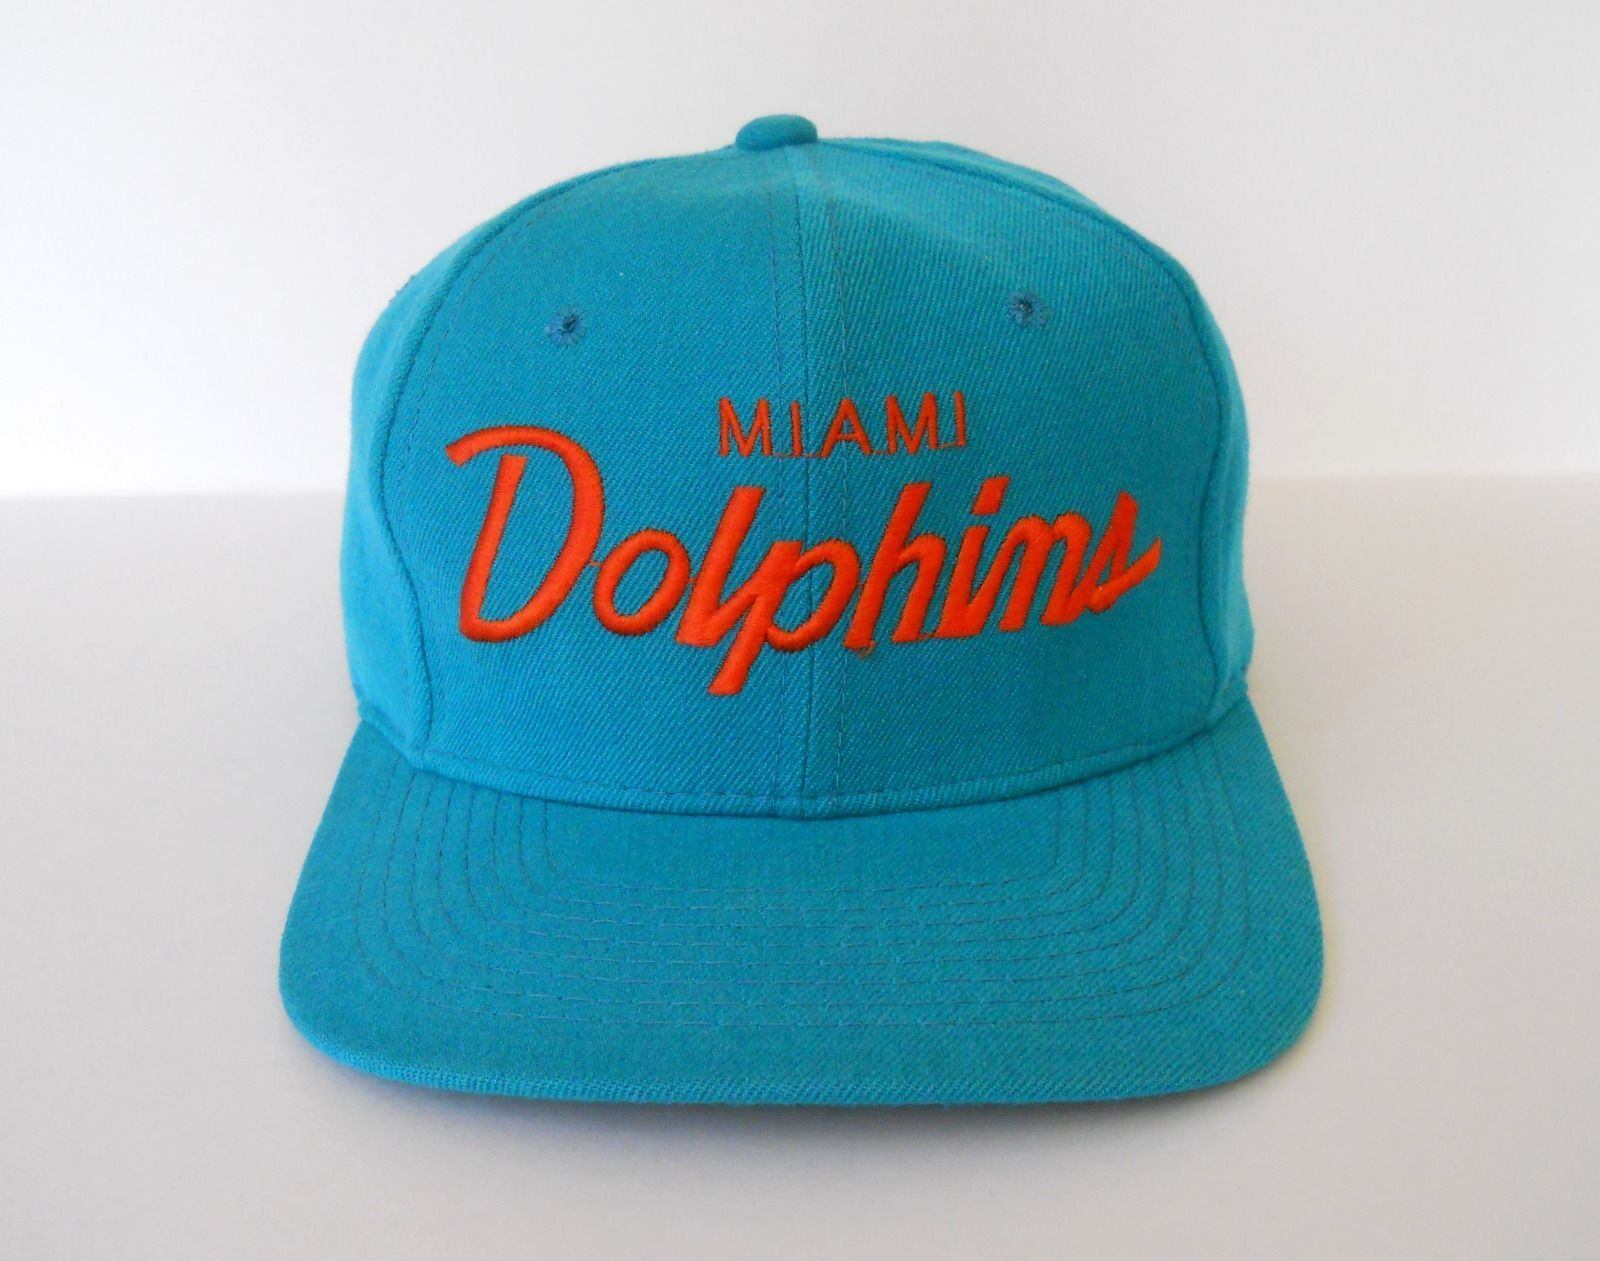 594c8a0195767 Miami Dolphins Snapback by Sports Secialties Single Line Script Pro NFL  Vintage